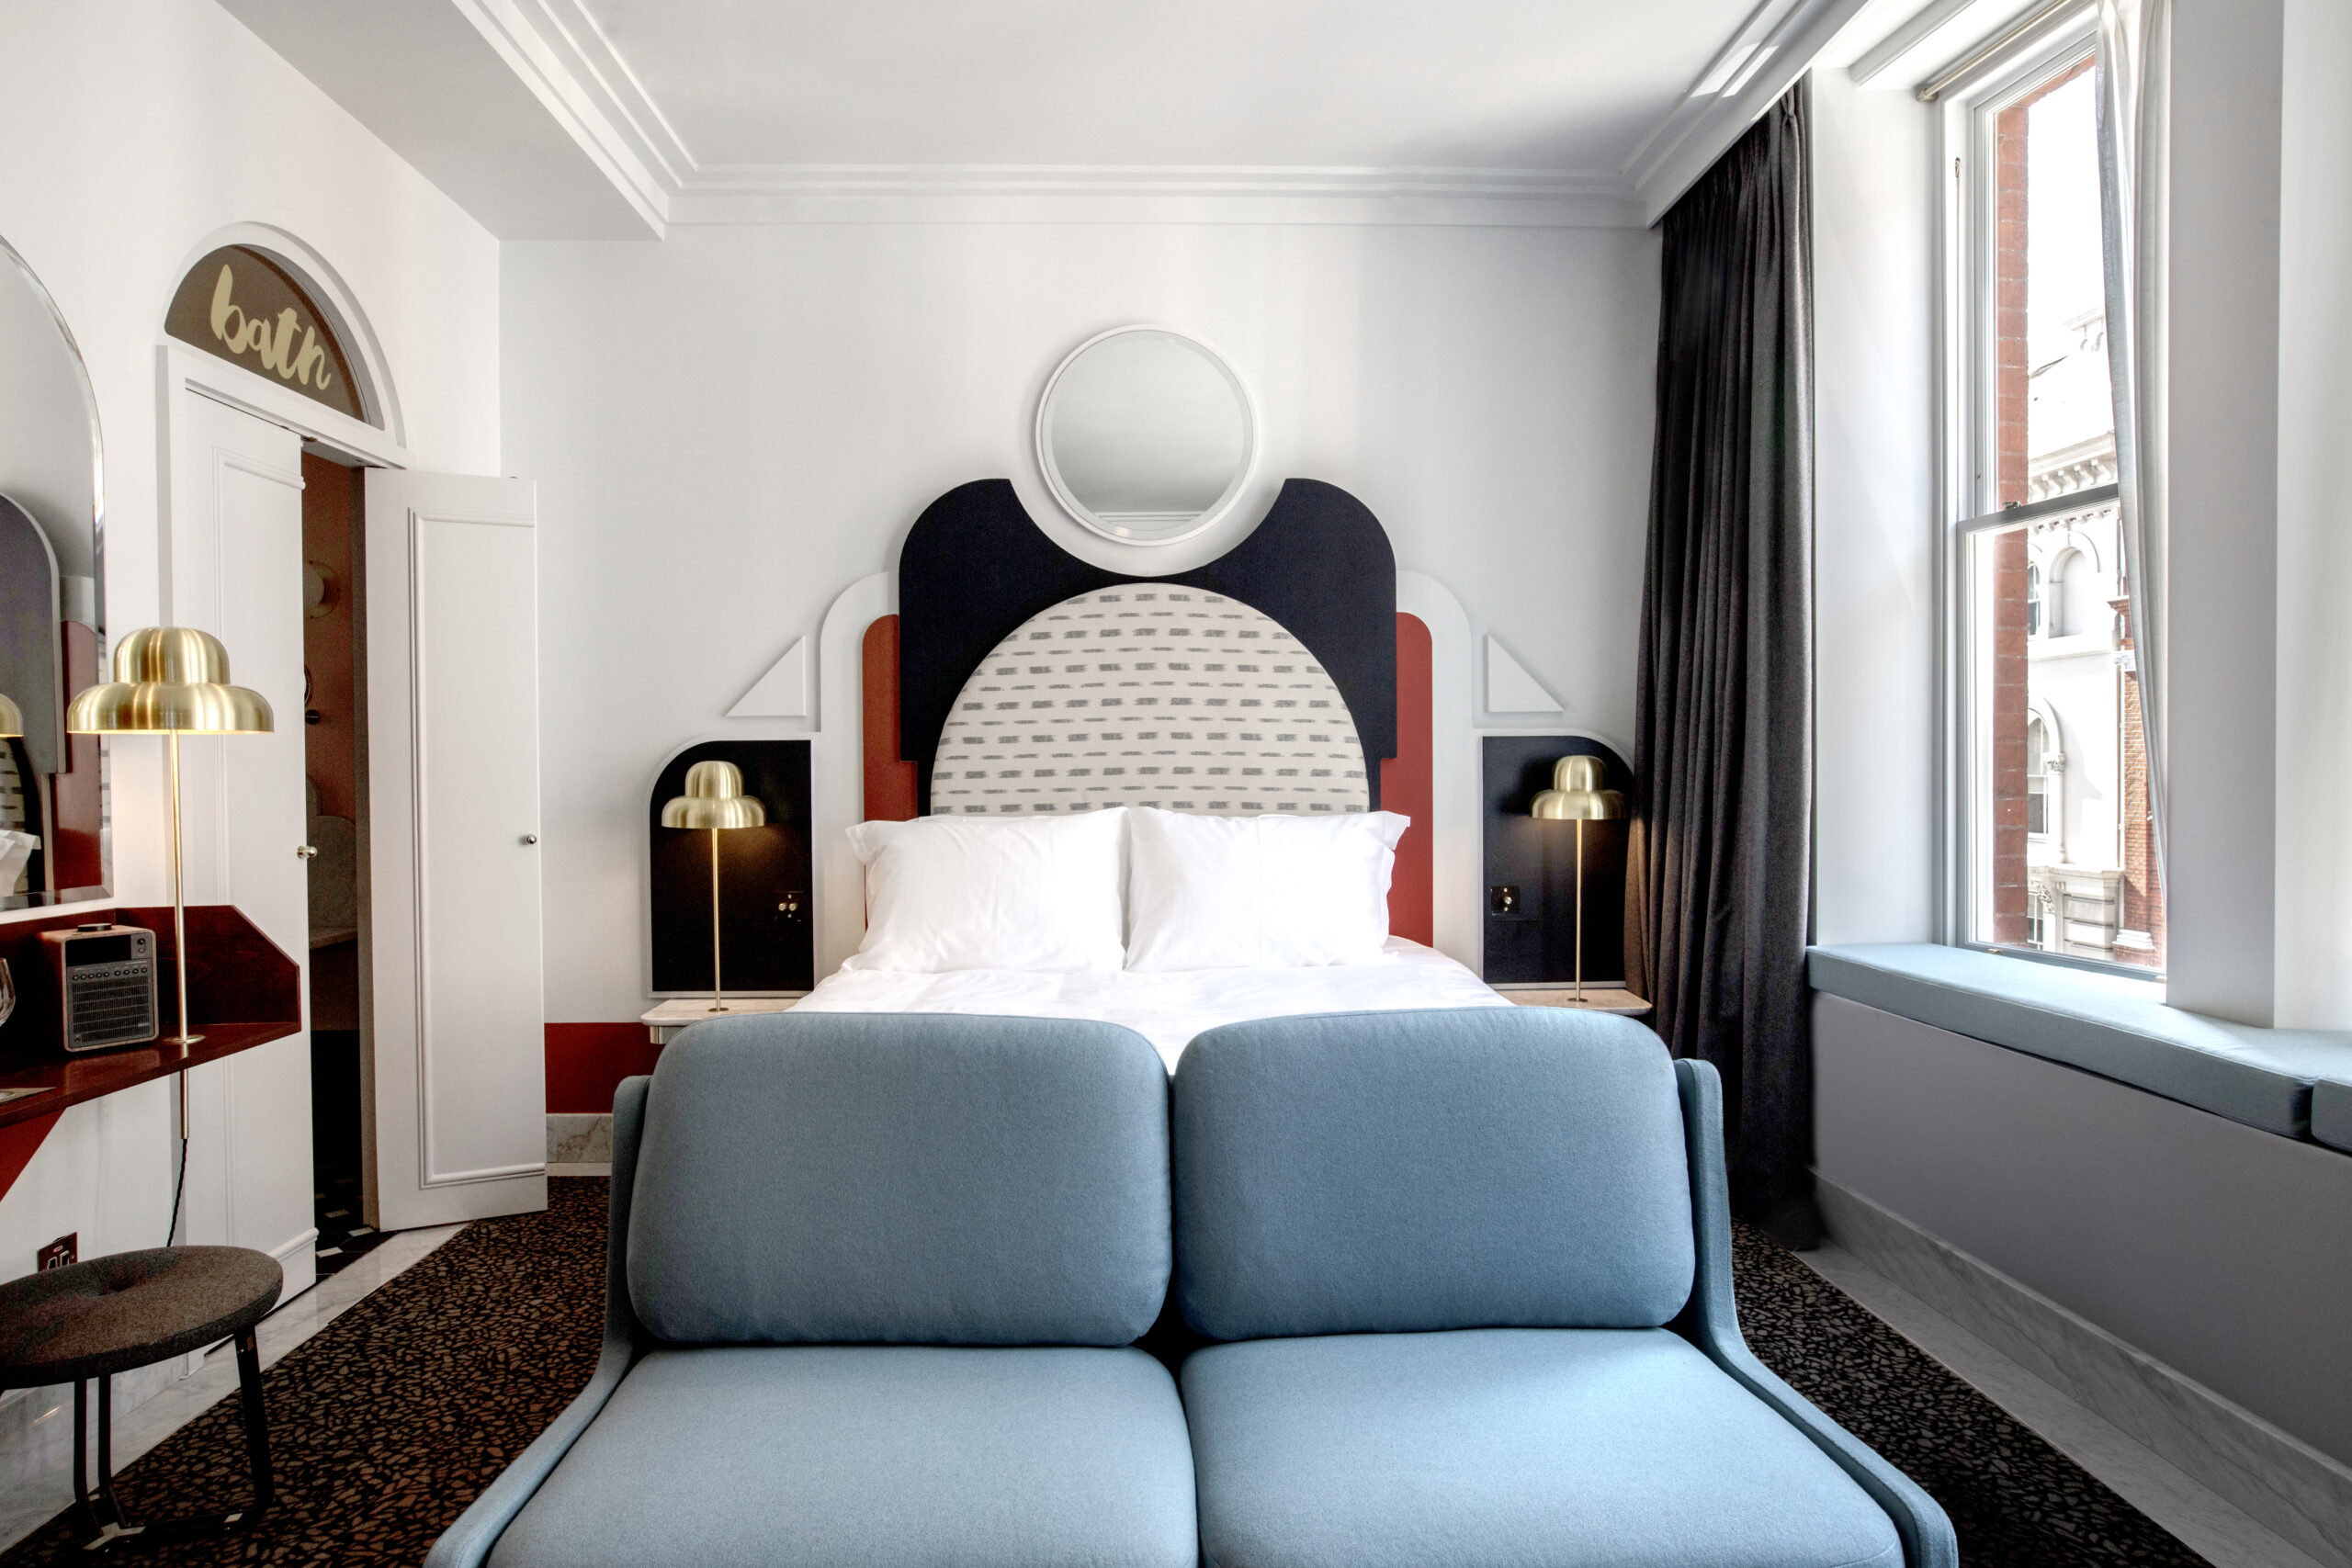 Henrietta hotel, London